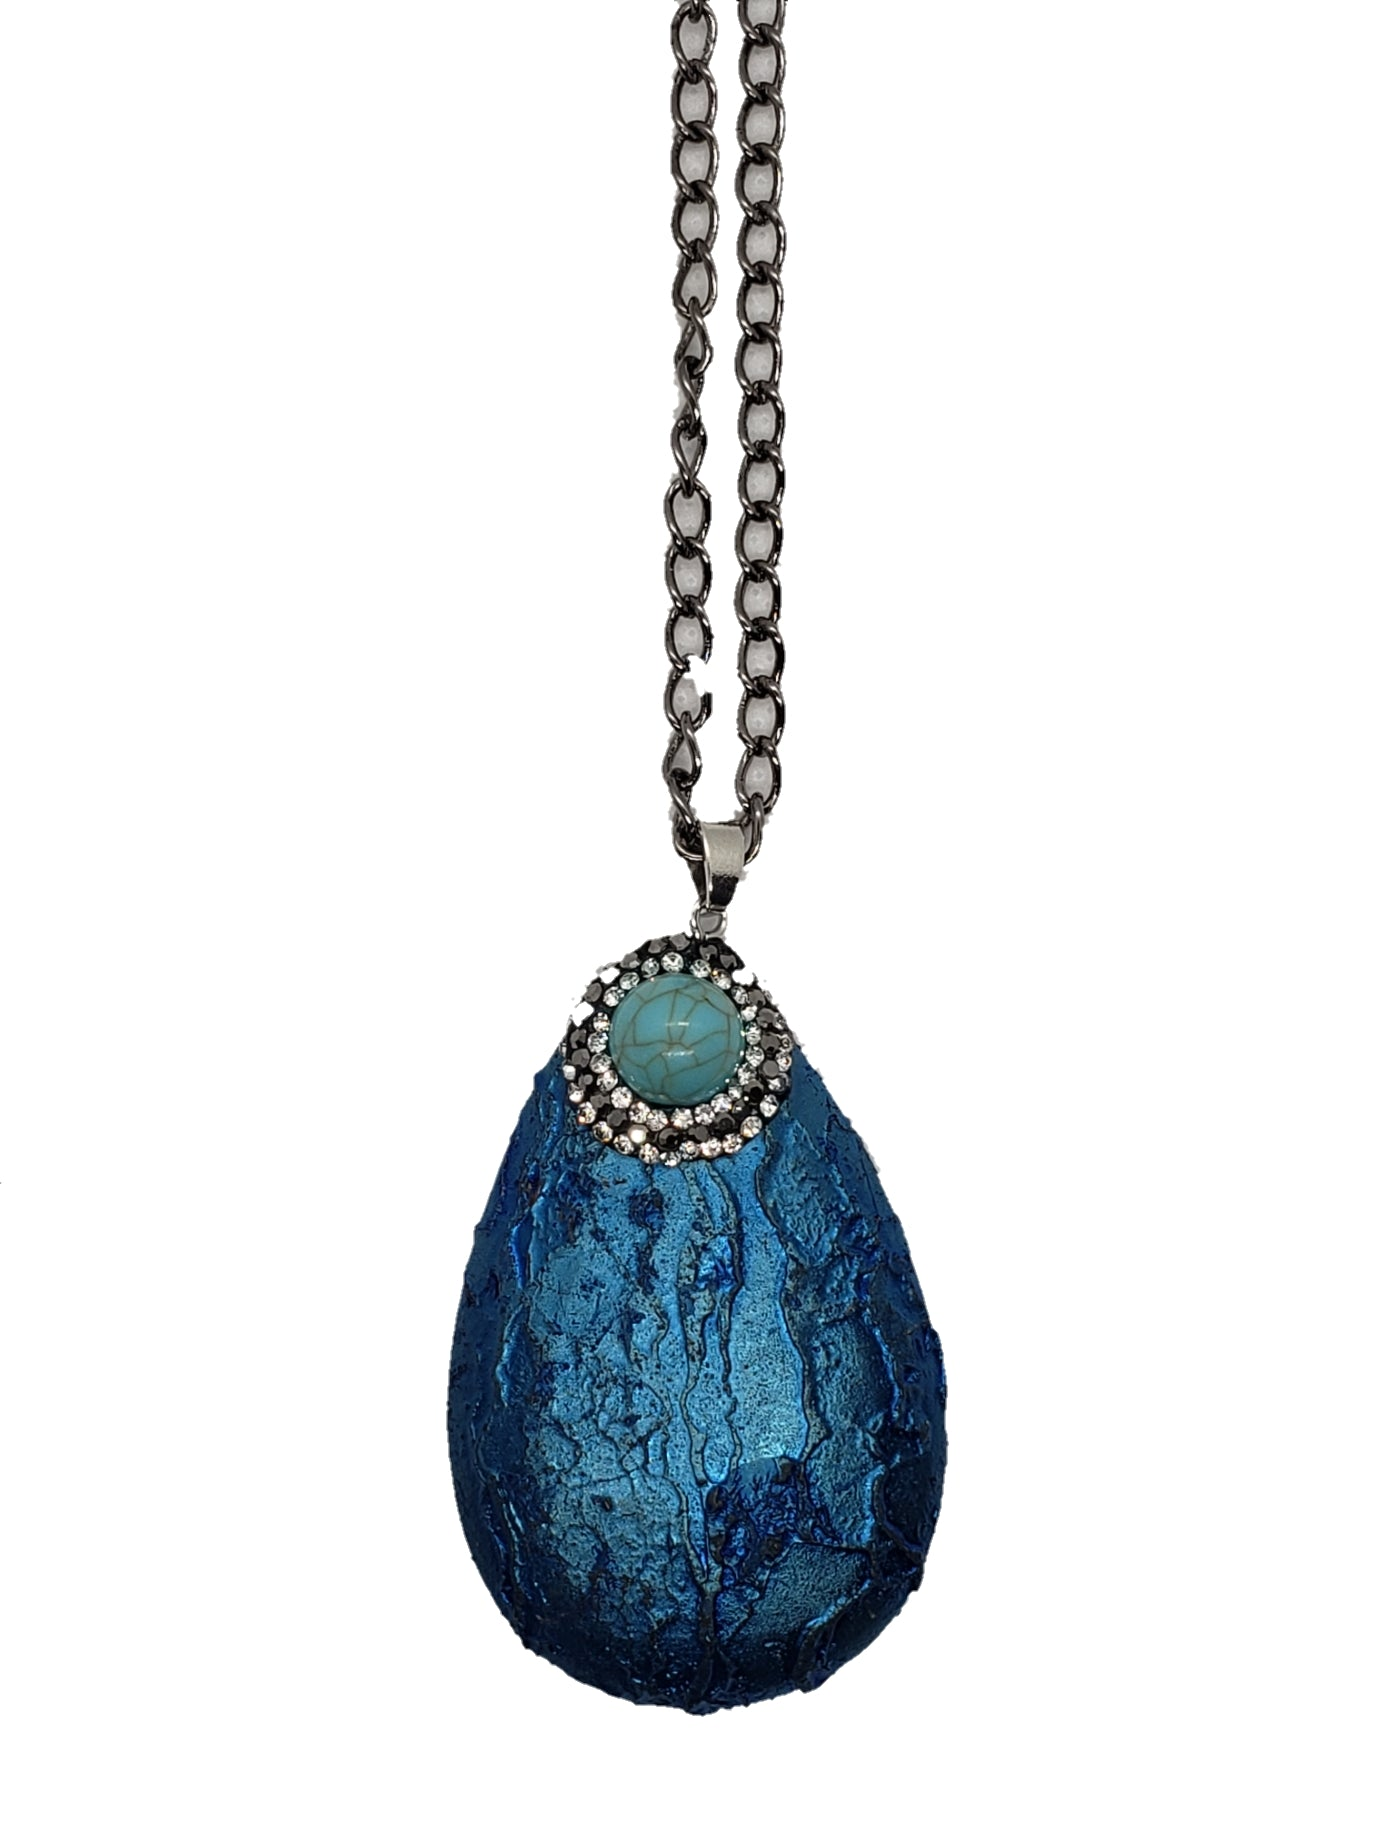 Bold Blue Agate Stone Necklace - The Bauble Shop